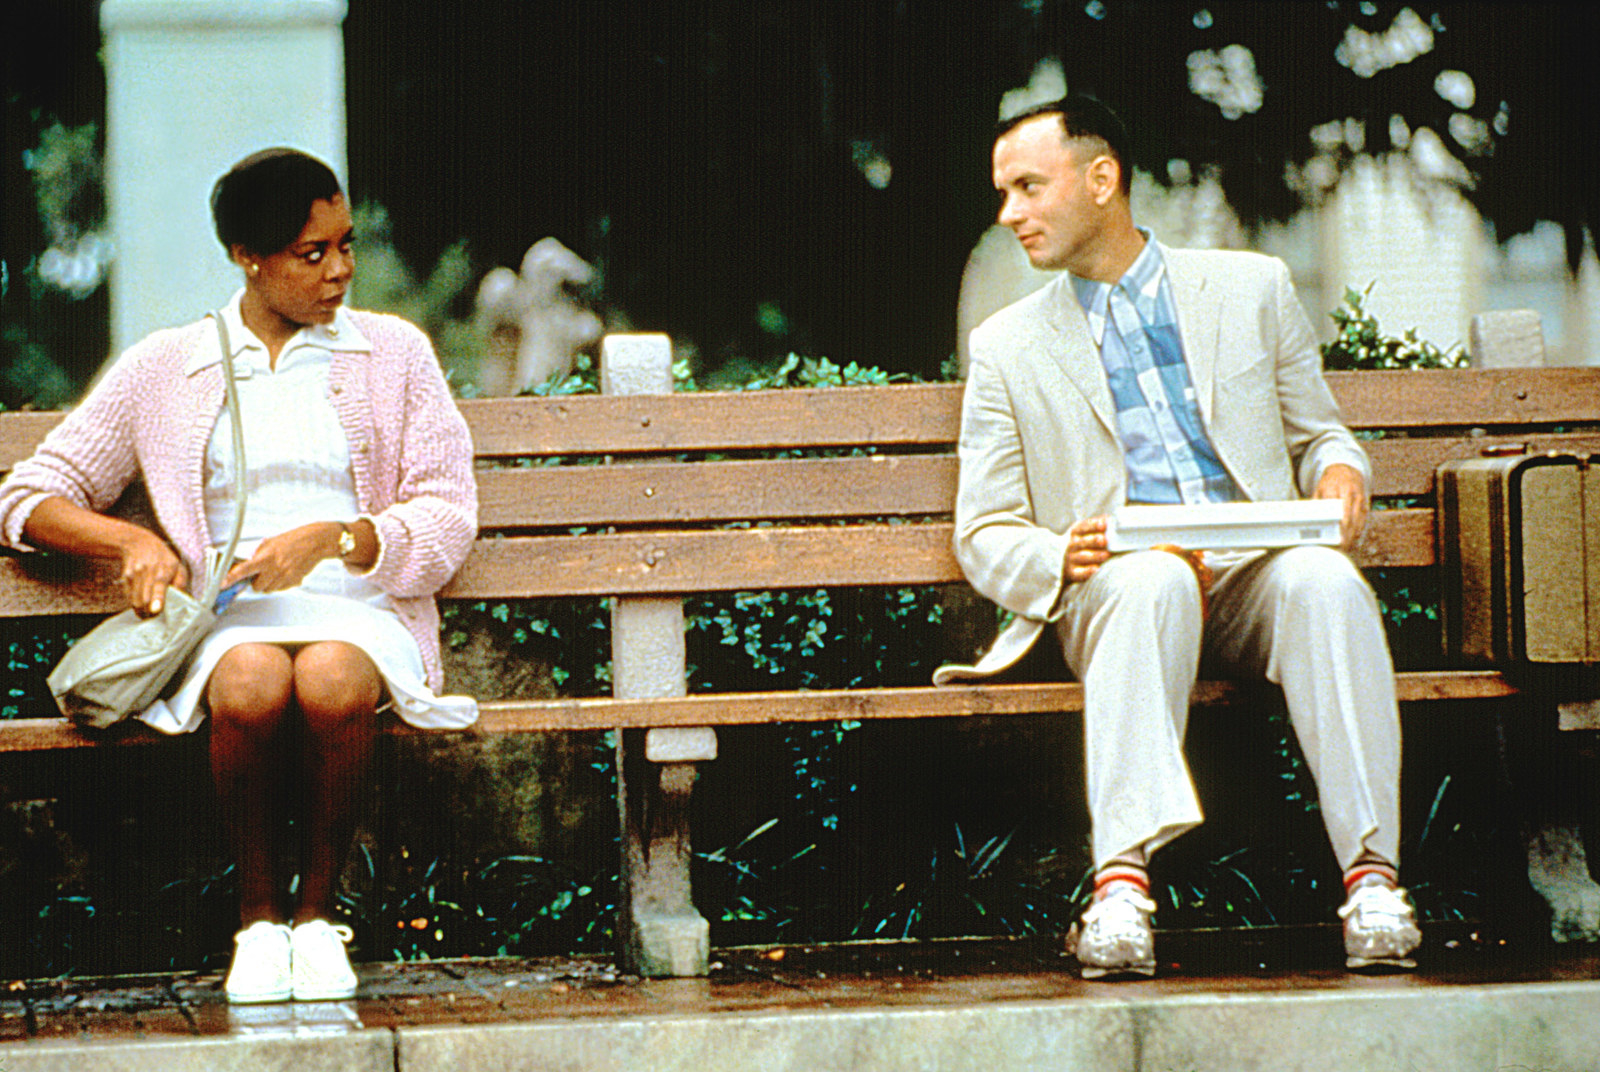 """A Totally Insane Sequel To """"Forrest Gump"""" Was Scrapped After 9/11"""